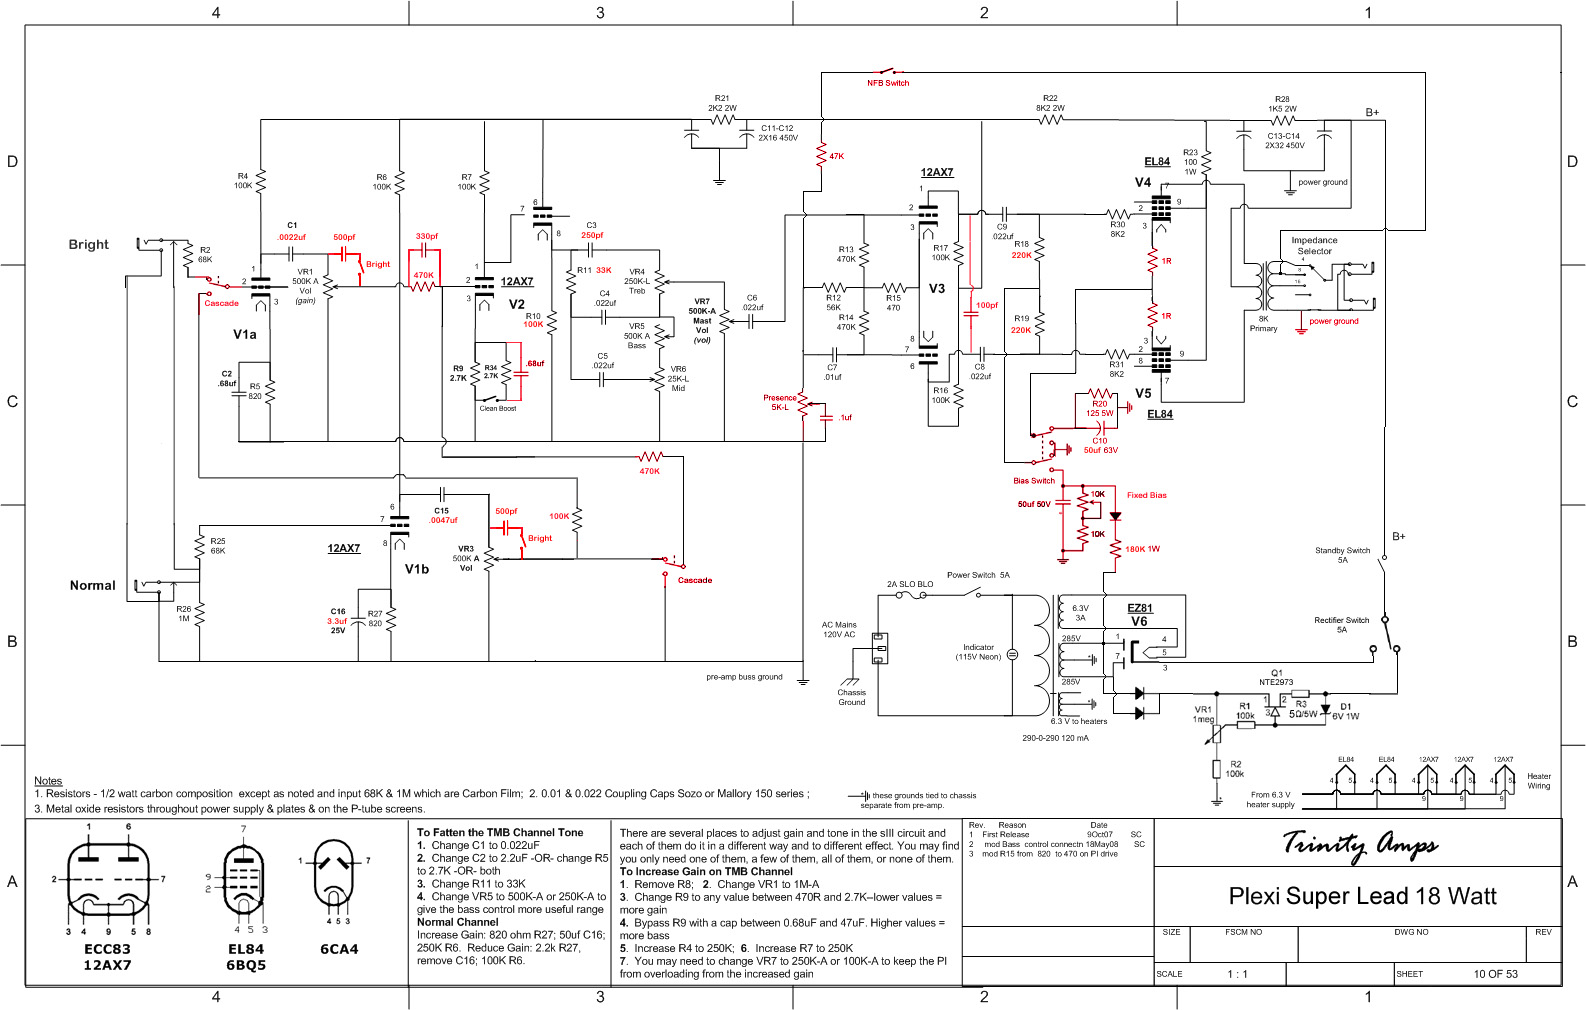 Are there other changes I need to make to the PI? Should I be using the 10k  tail and 1M grid leaks from the 1959 circuit as well?